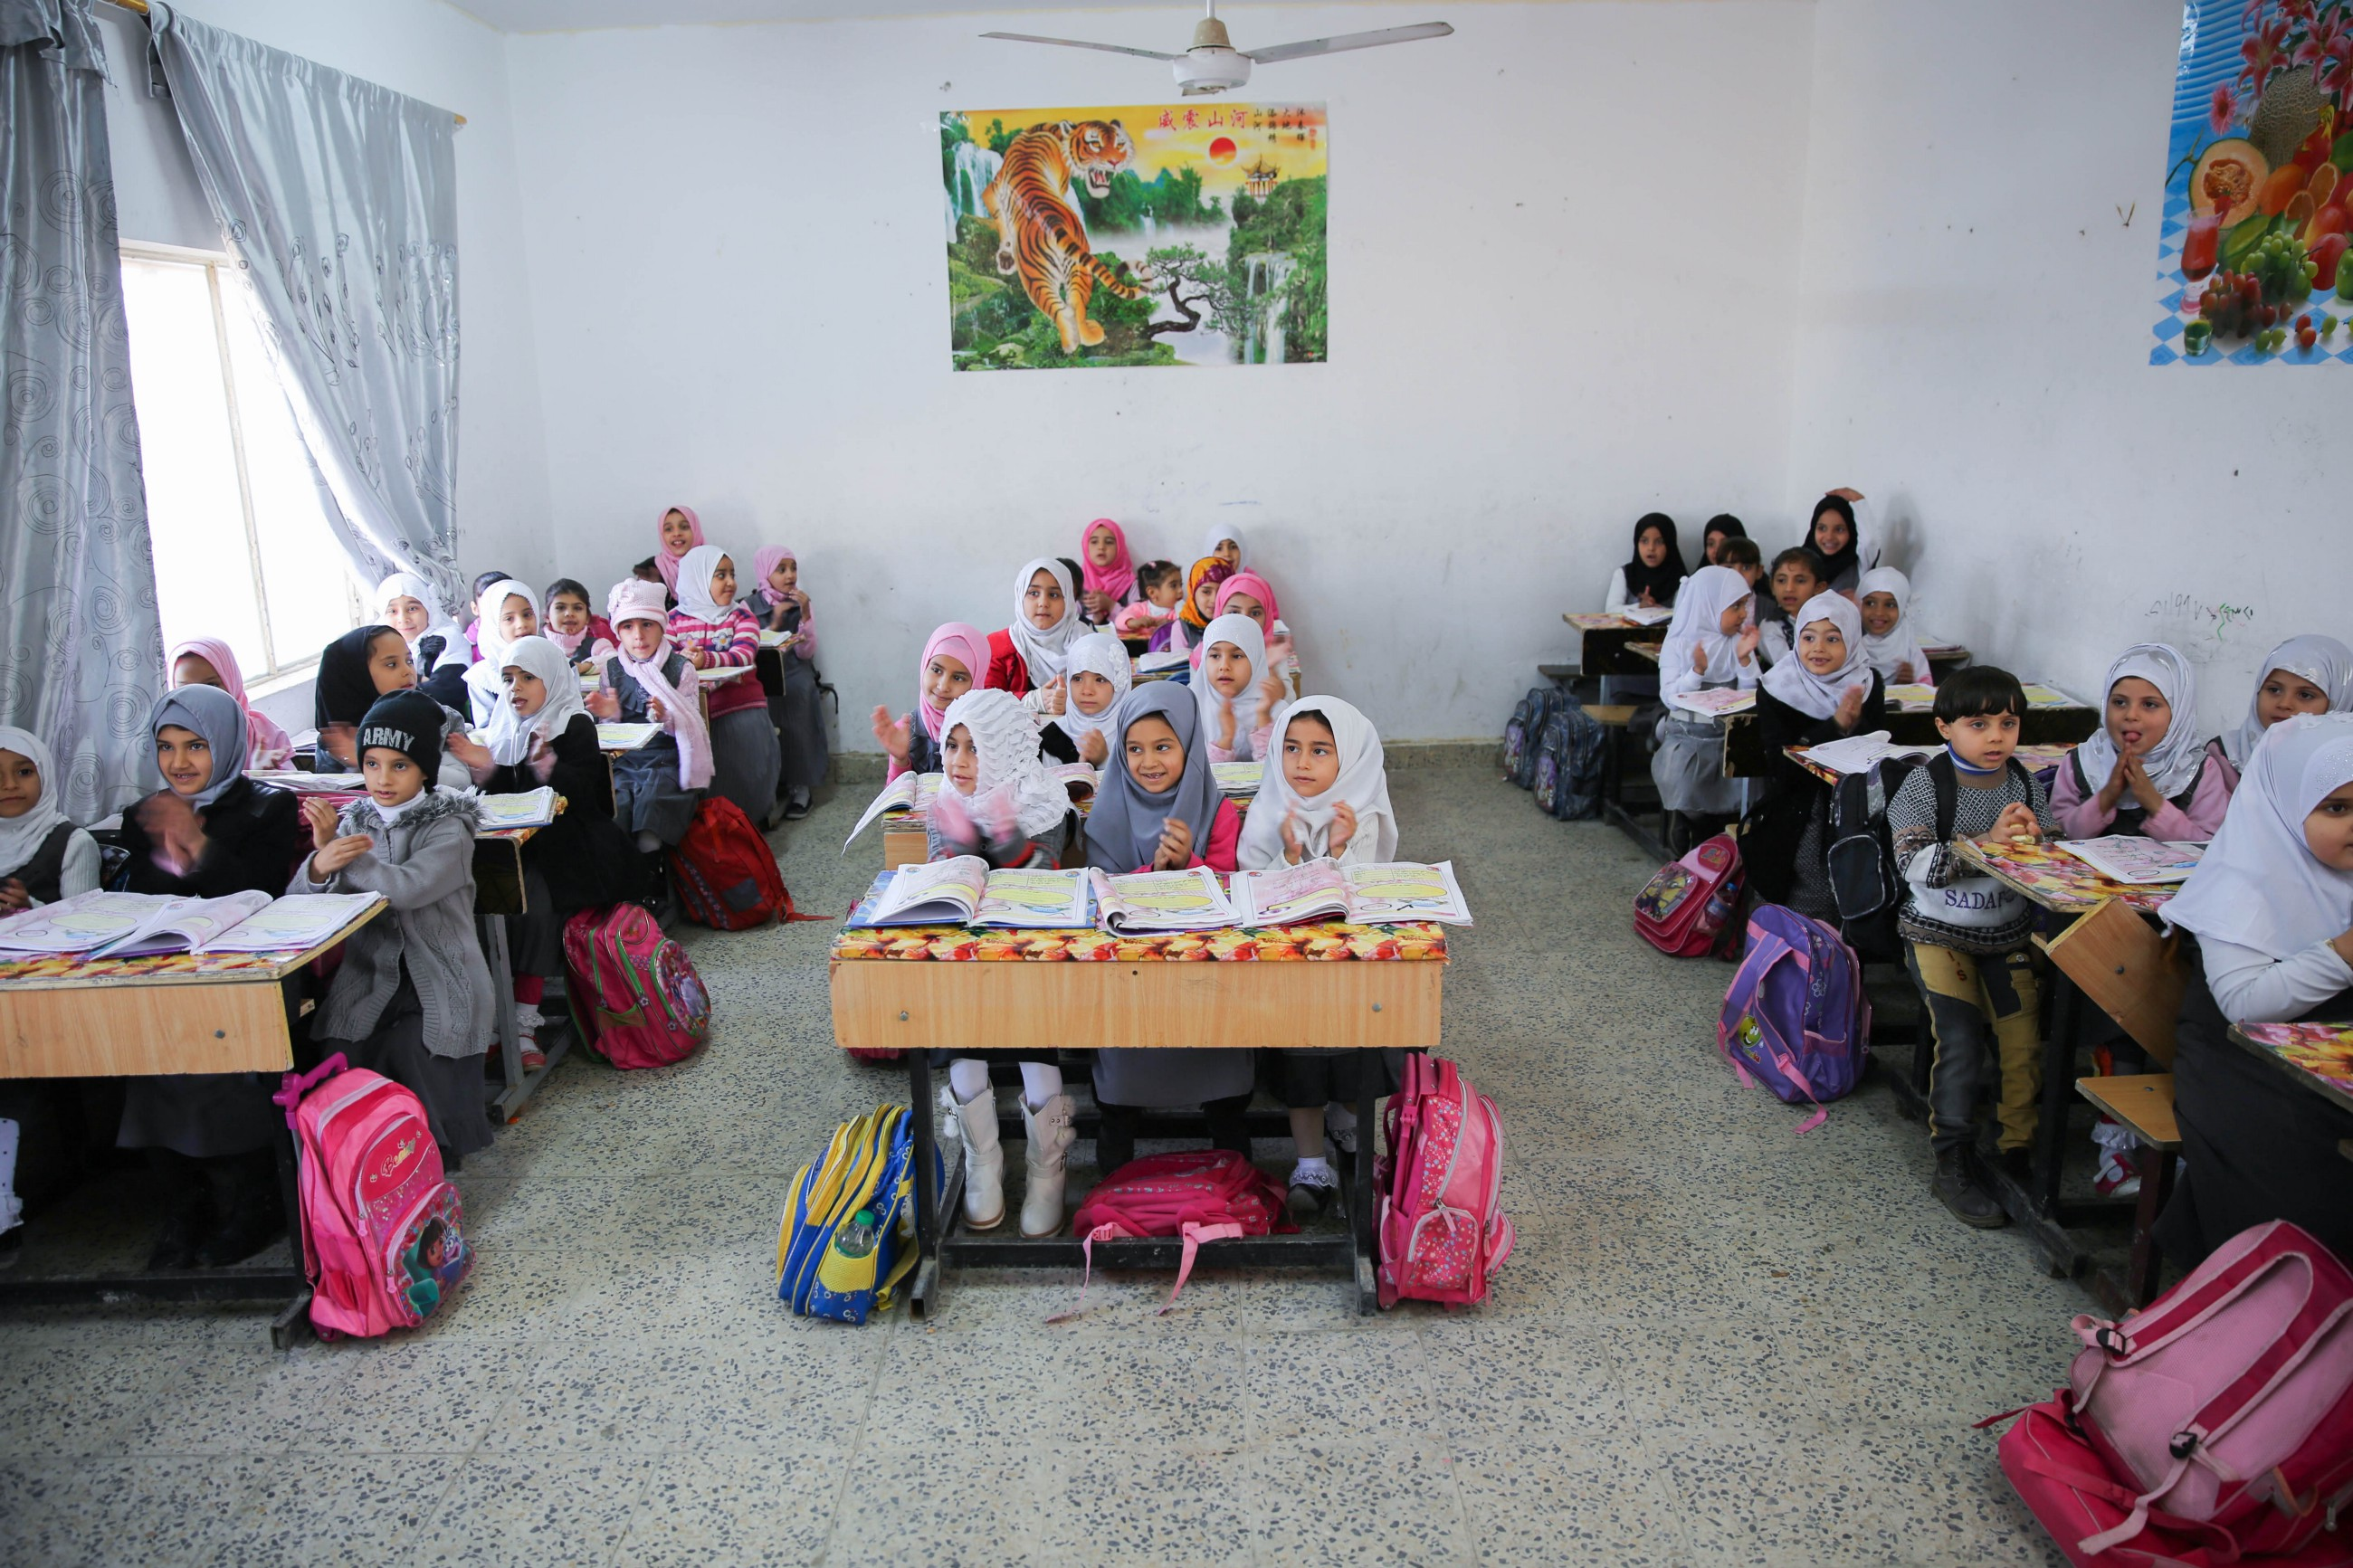 Radio Helsinki 8 129 Photos 97 Reviews Company Pikku Iraq Makes Gains For School Children Stories From Unicef In Iraq